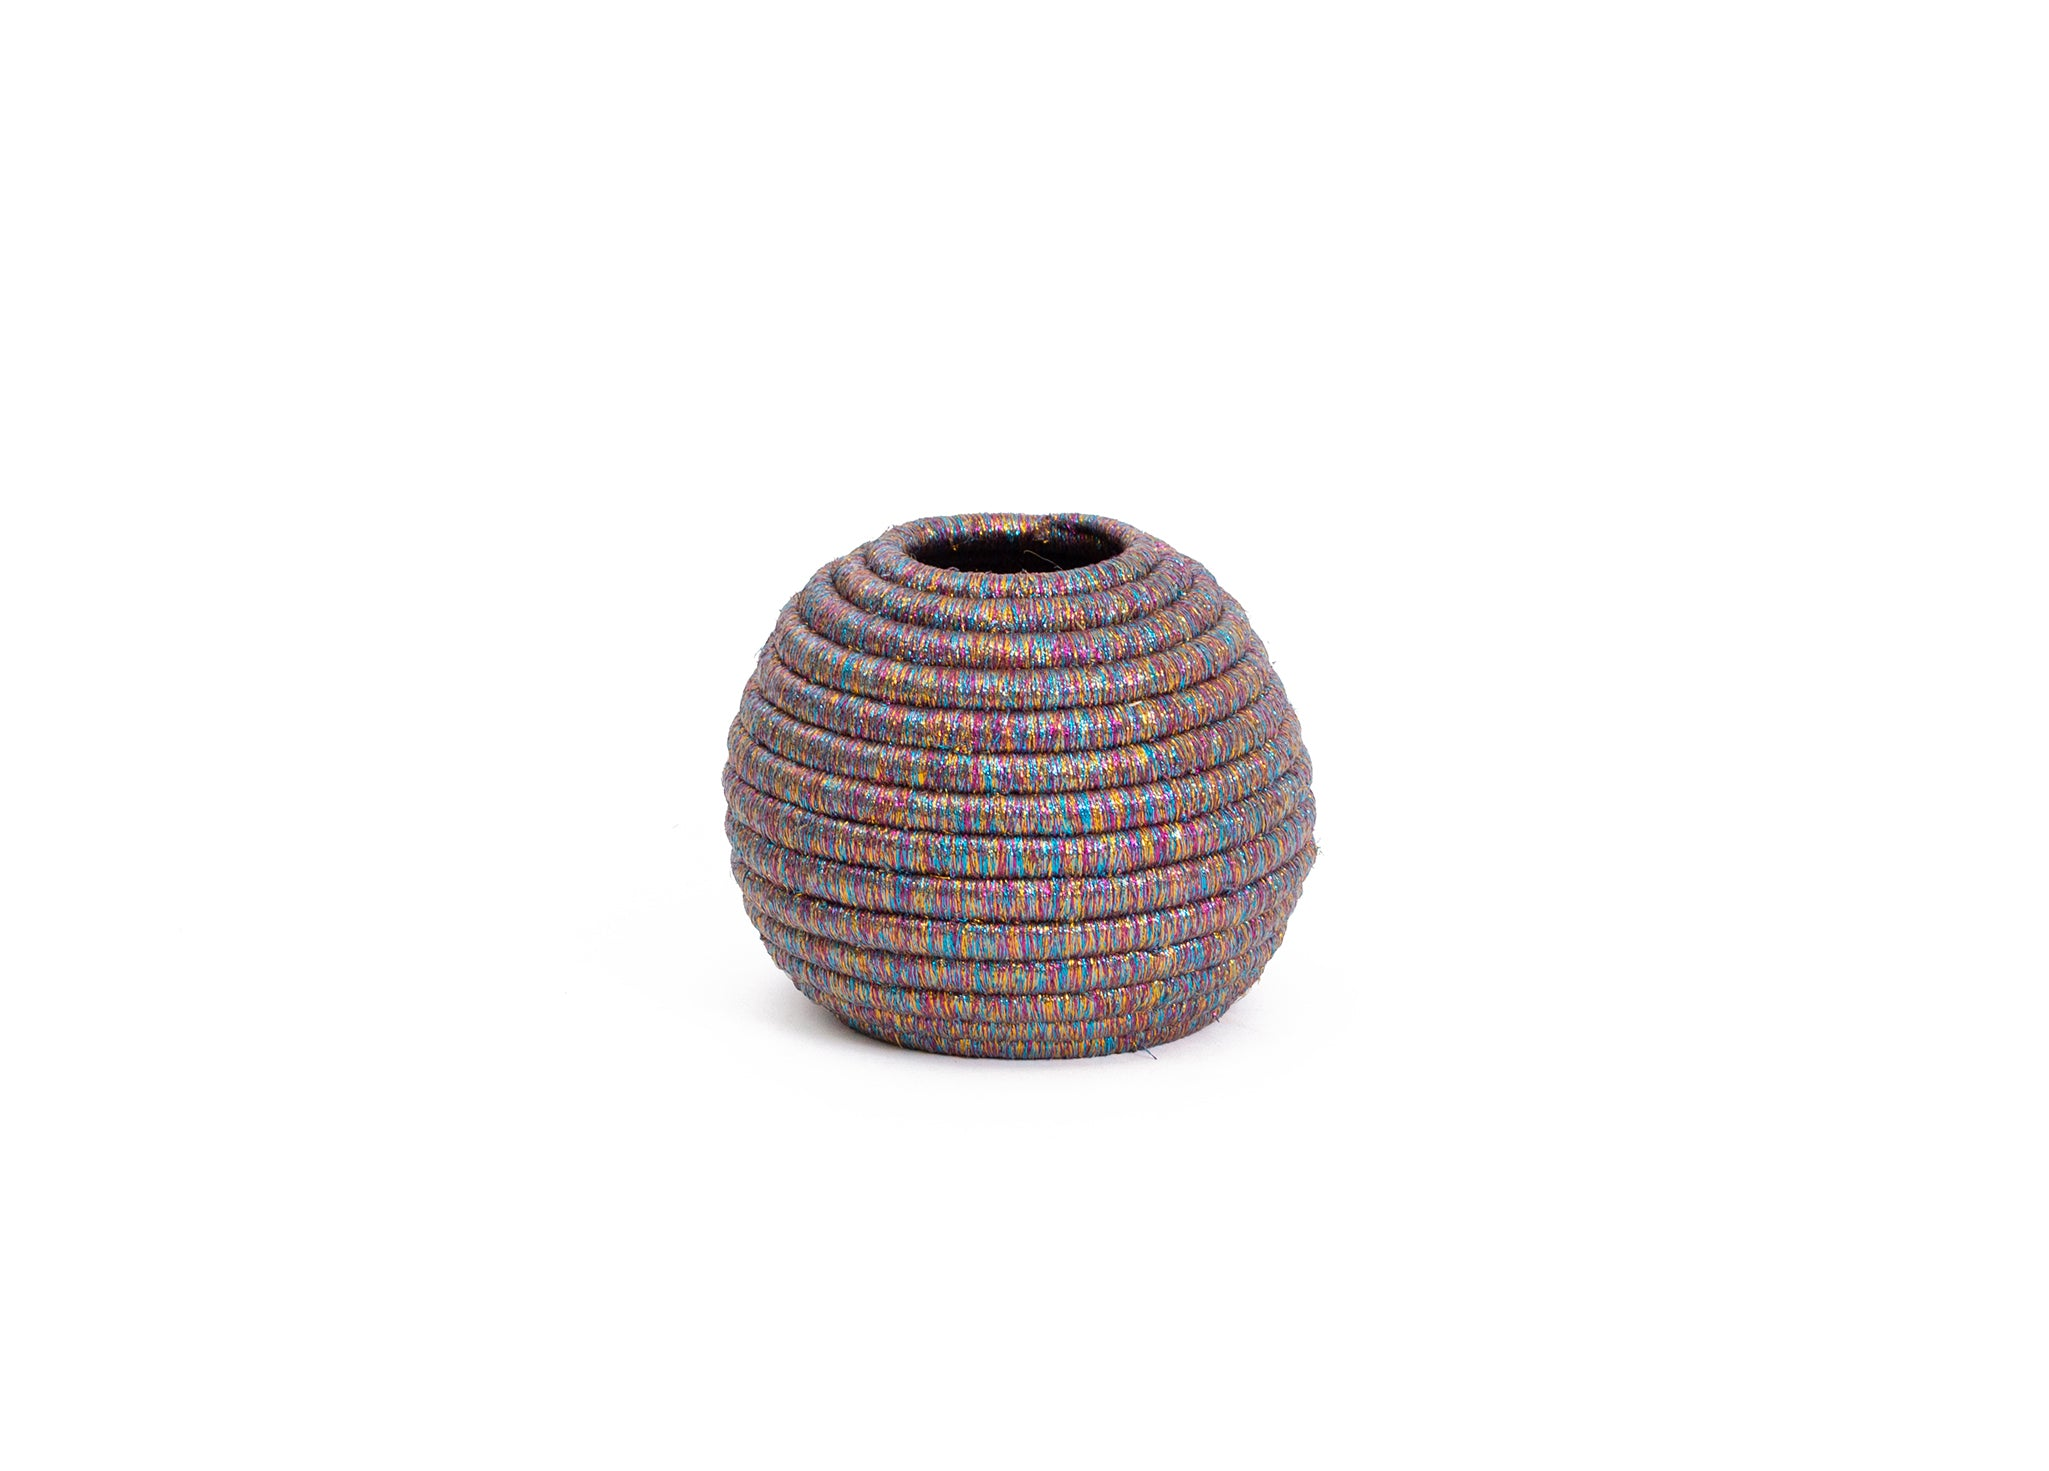 Metallic Prism Ball Vase - KAZI